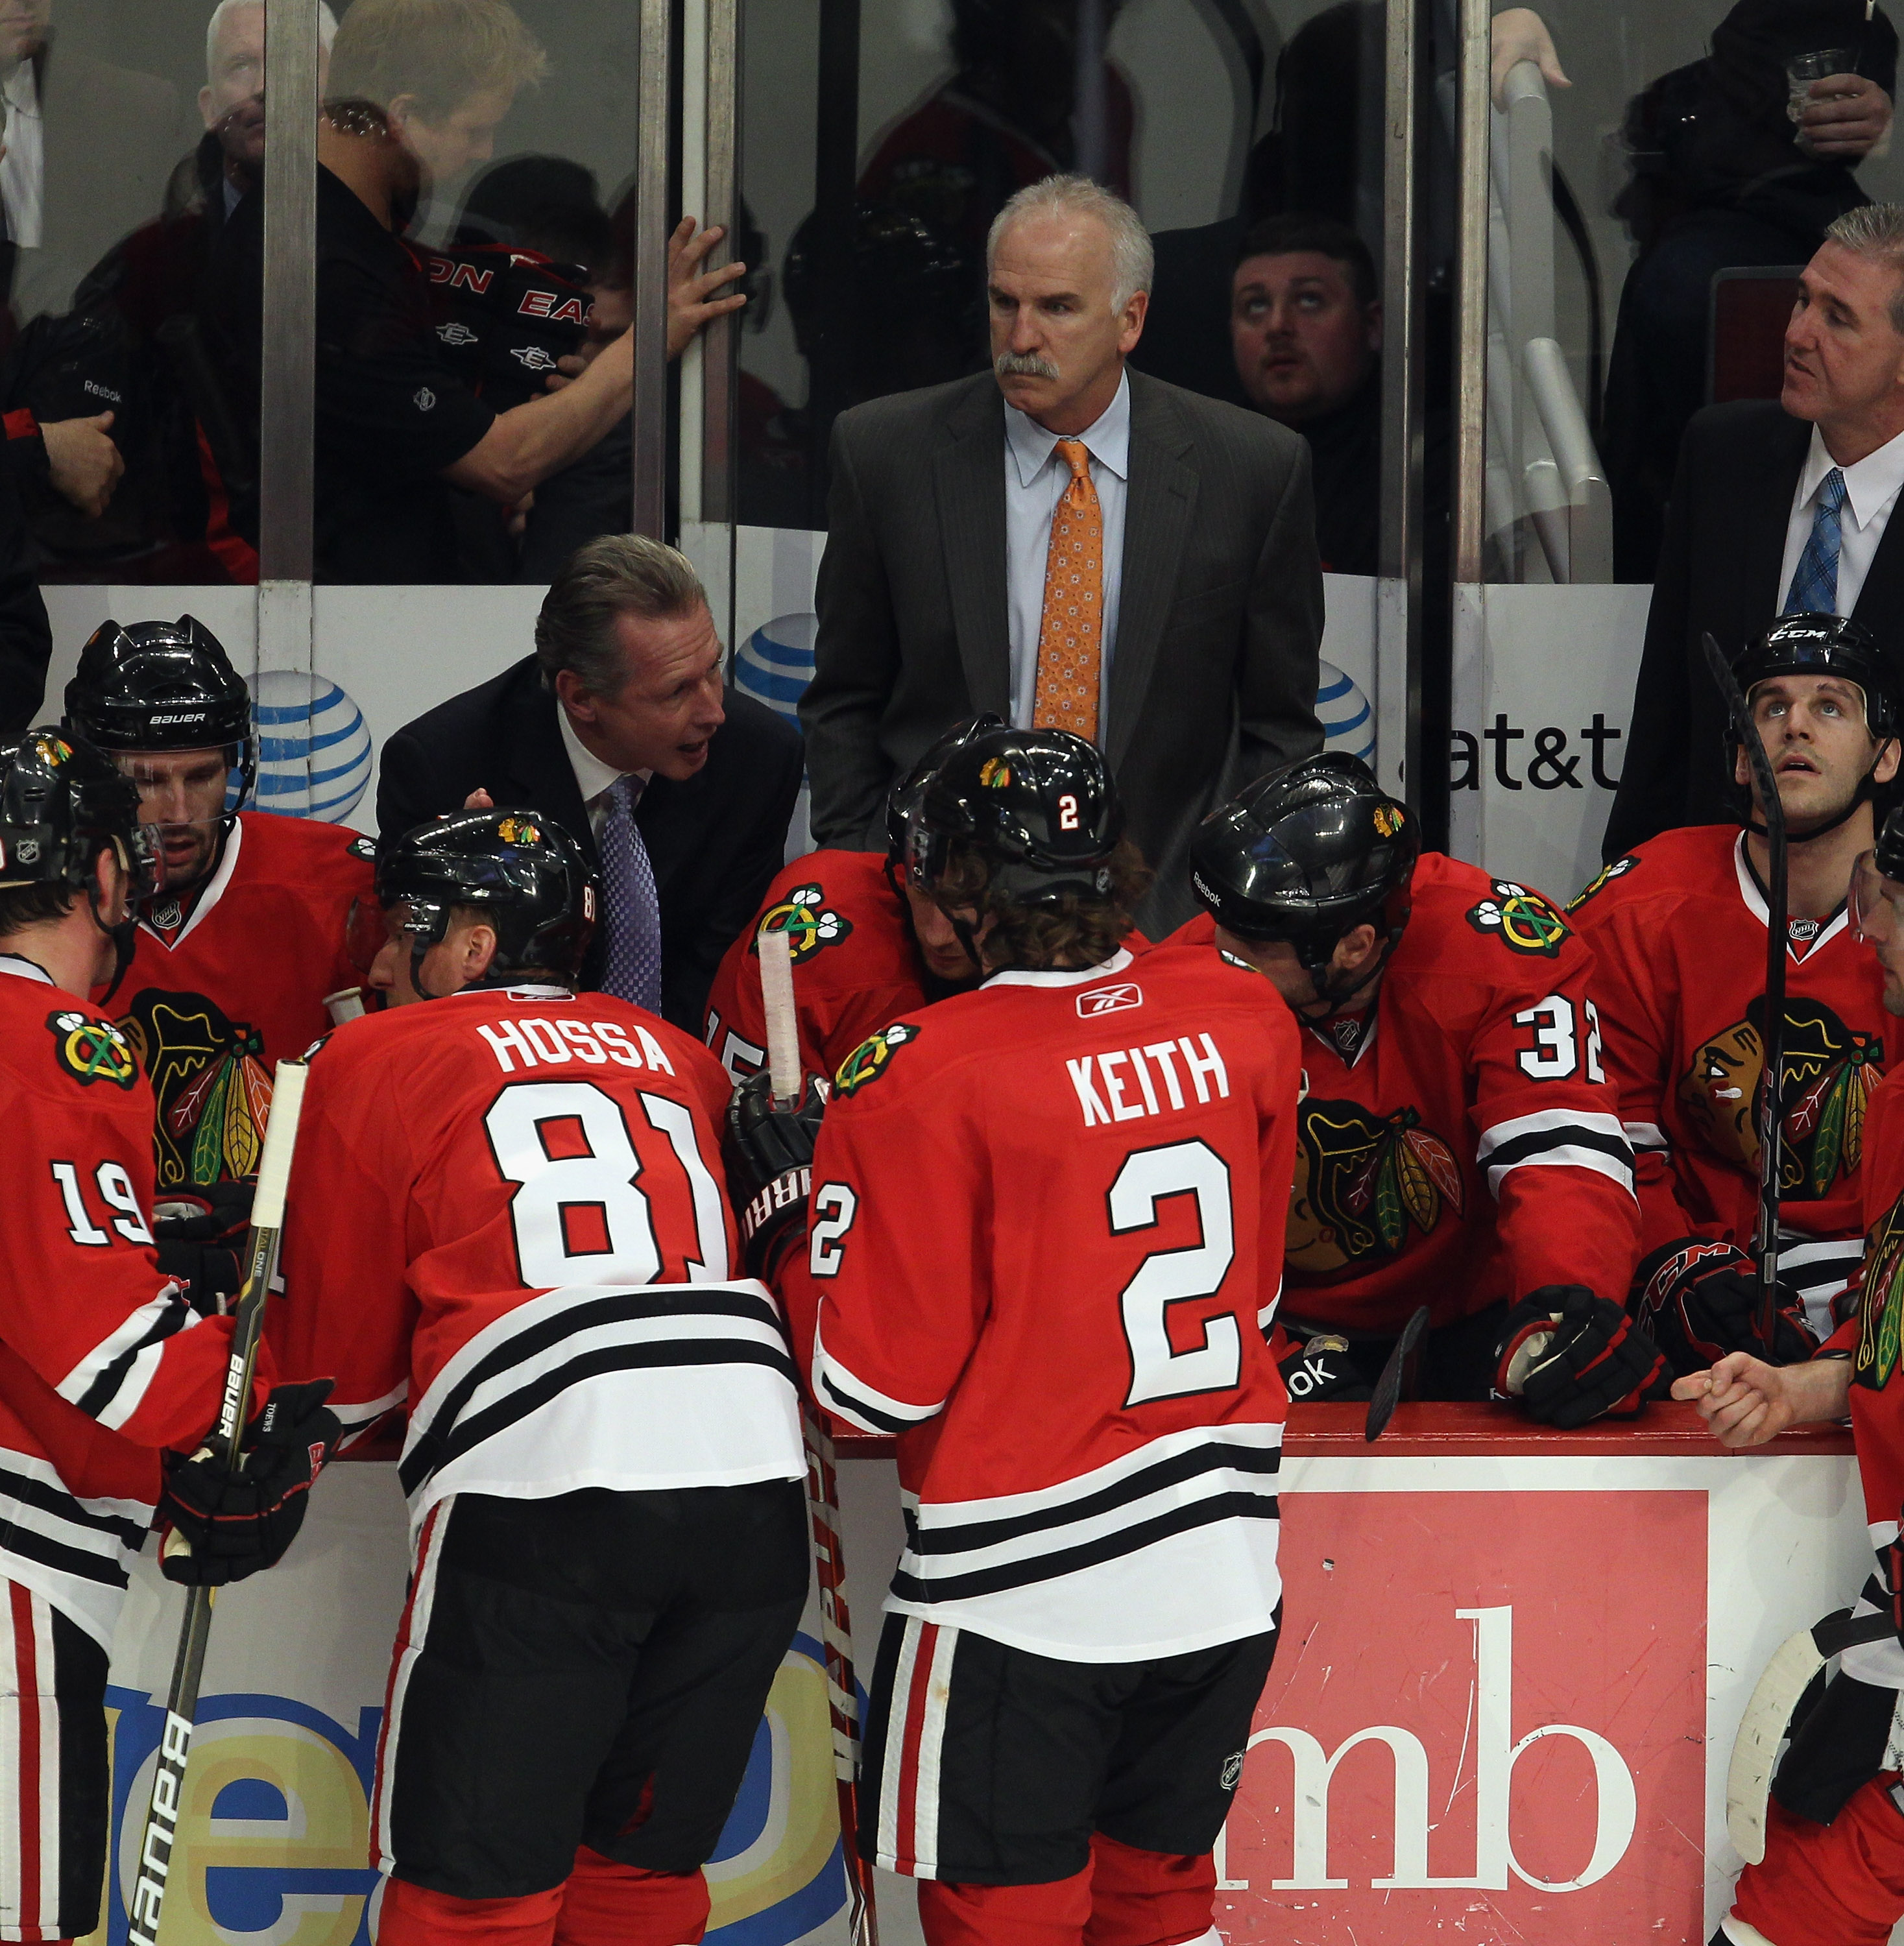 Chicago Blackhawks  Who Is Joel Quenneville s 12th Forward in Game 7  Showdown  6c33c1480